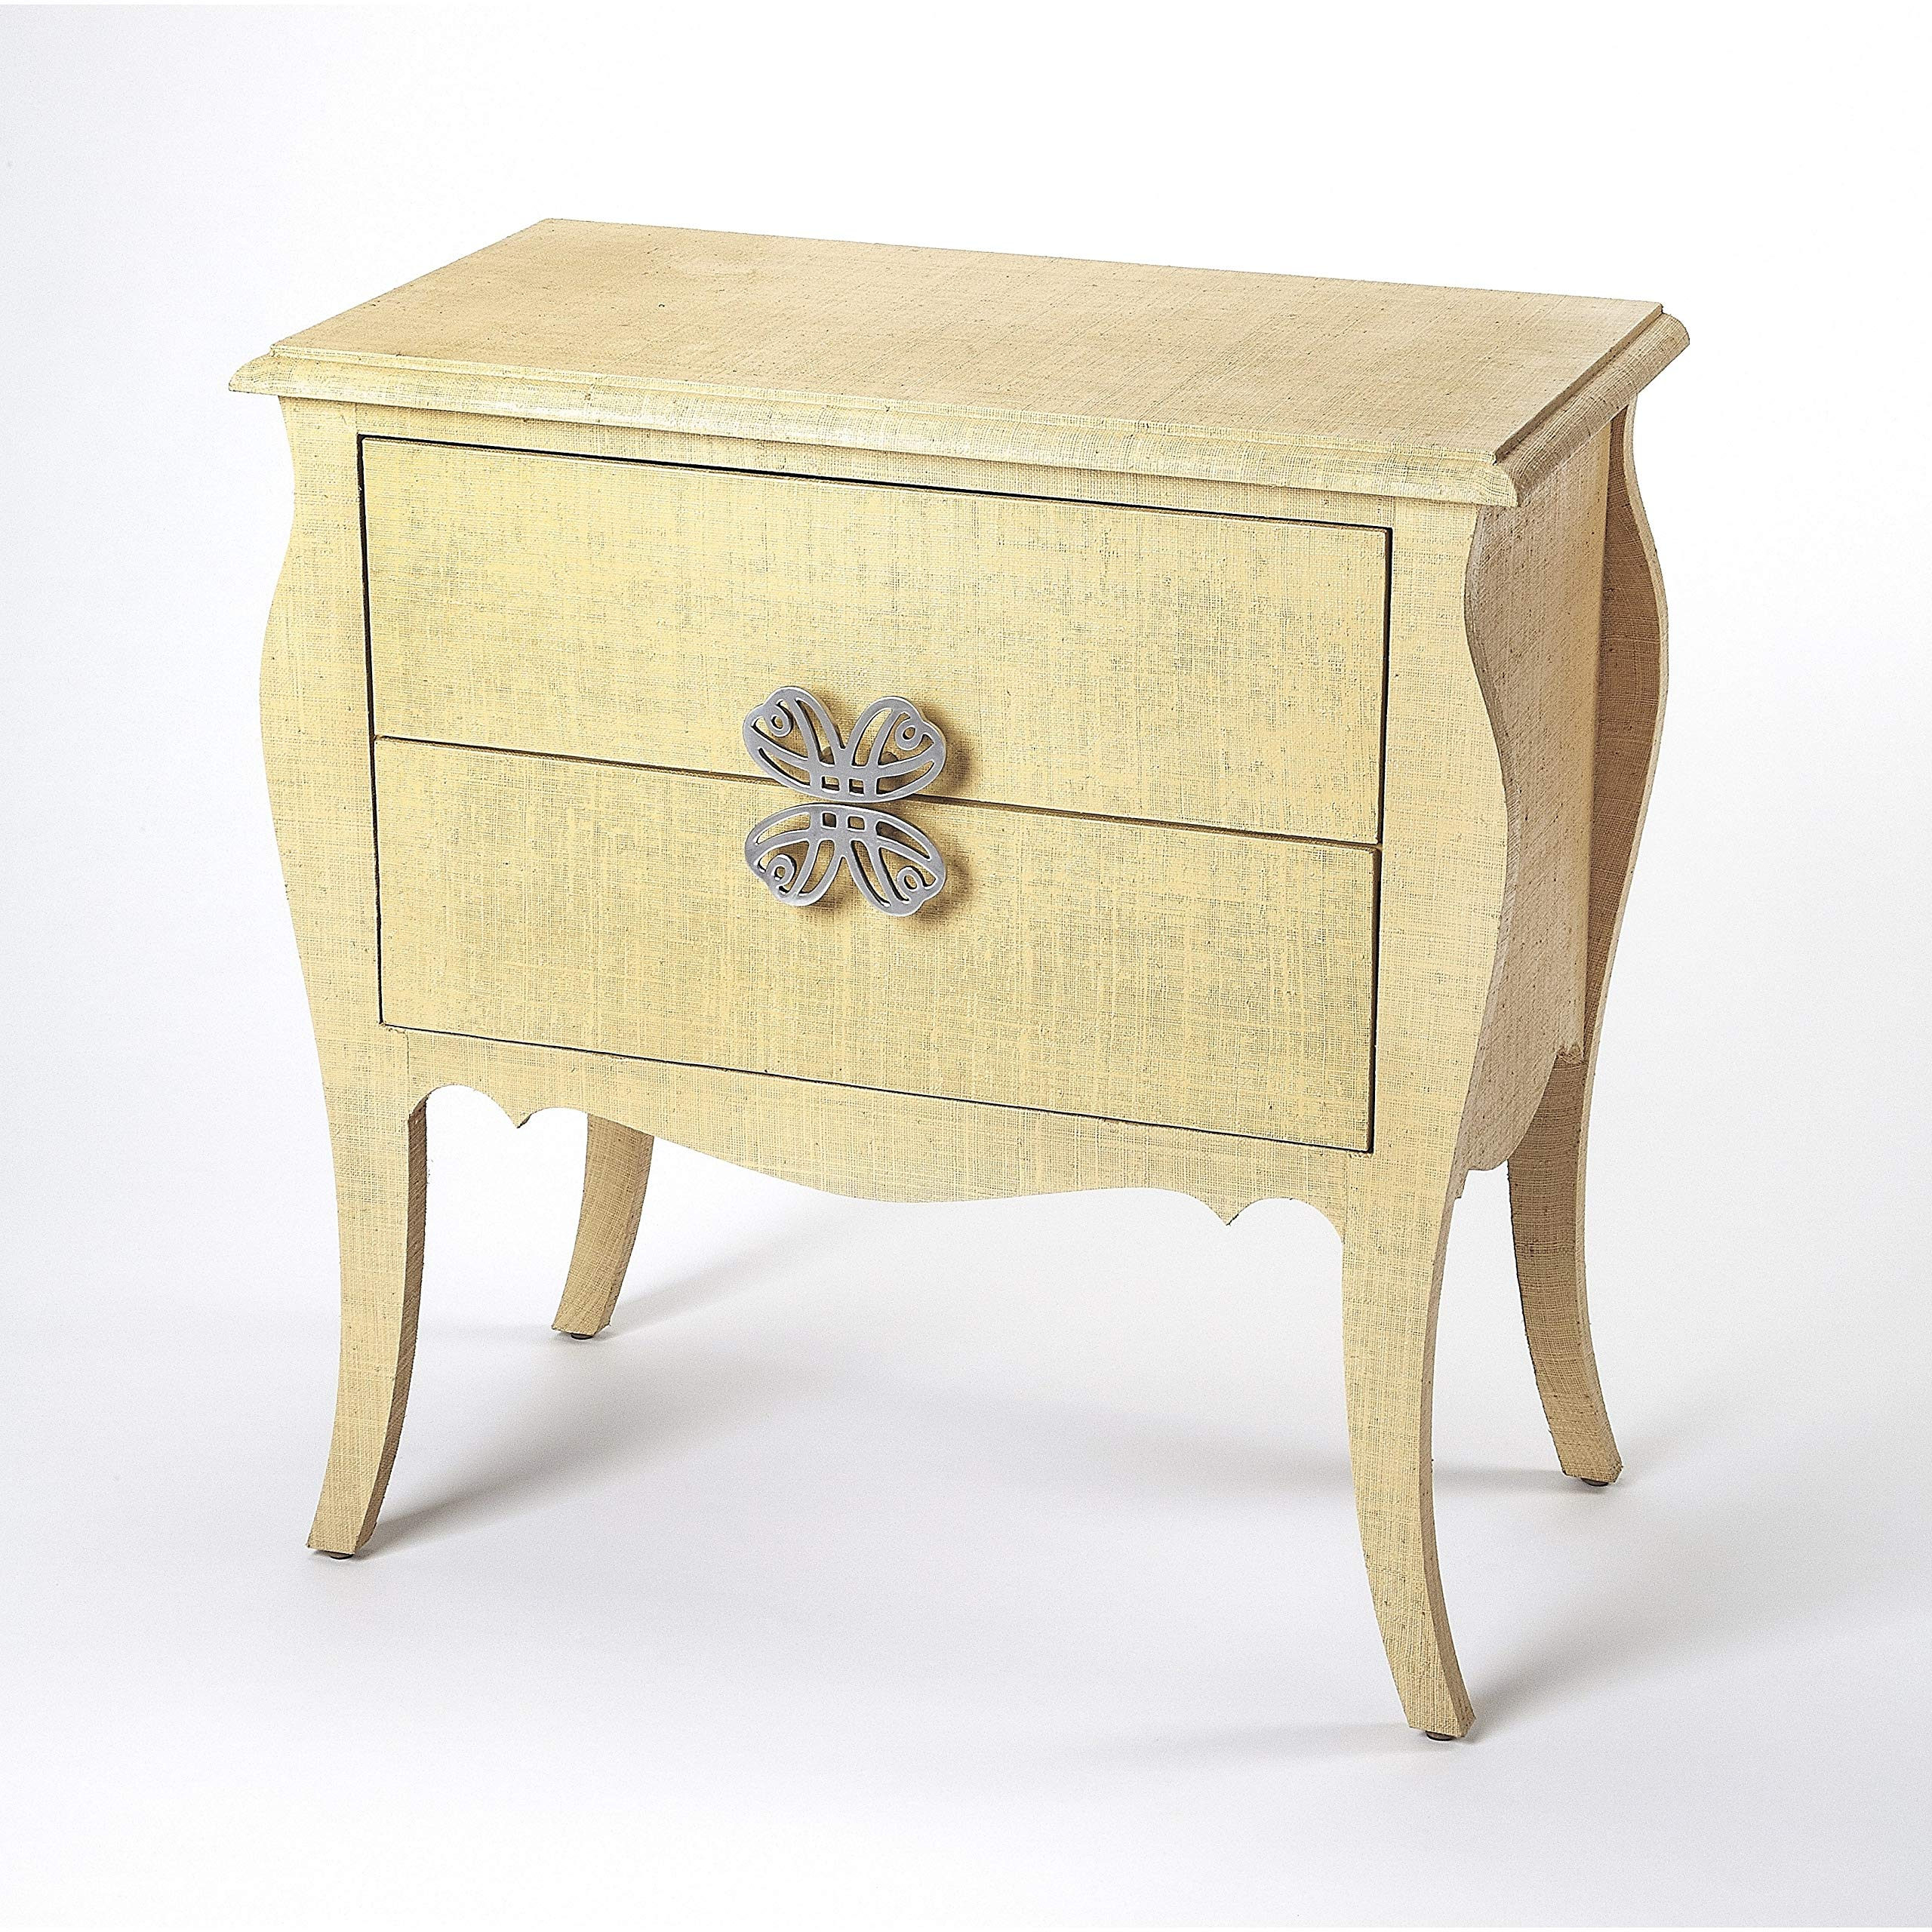 Felicia Transitional Rectangular Natural Raffia Accent Chest - Beige Rectangle Aluminum MDF Wood Distressed Finish by Unknown